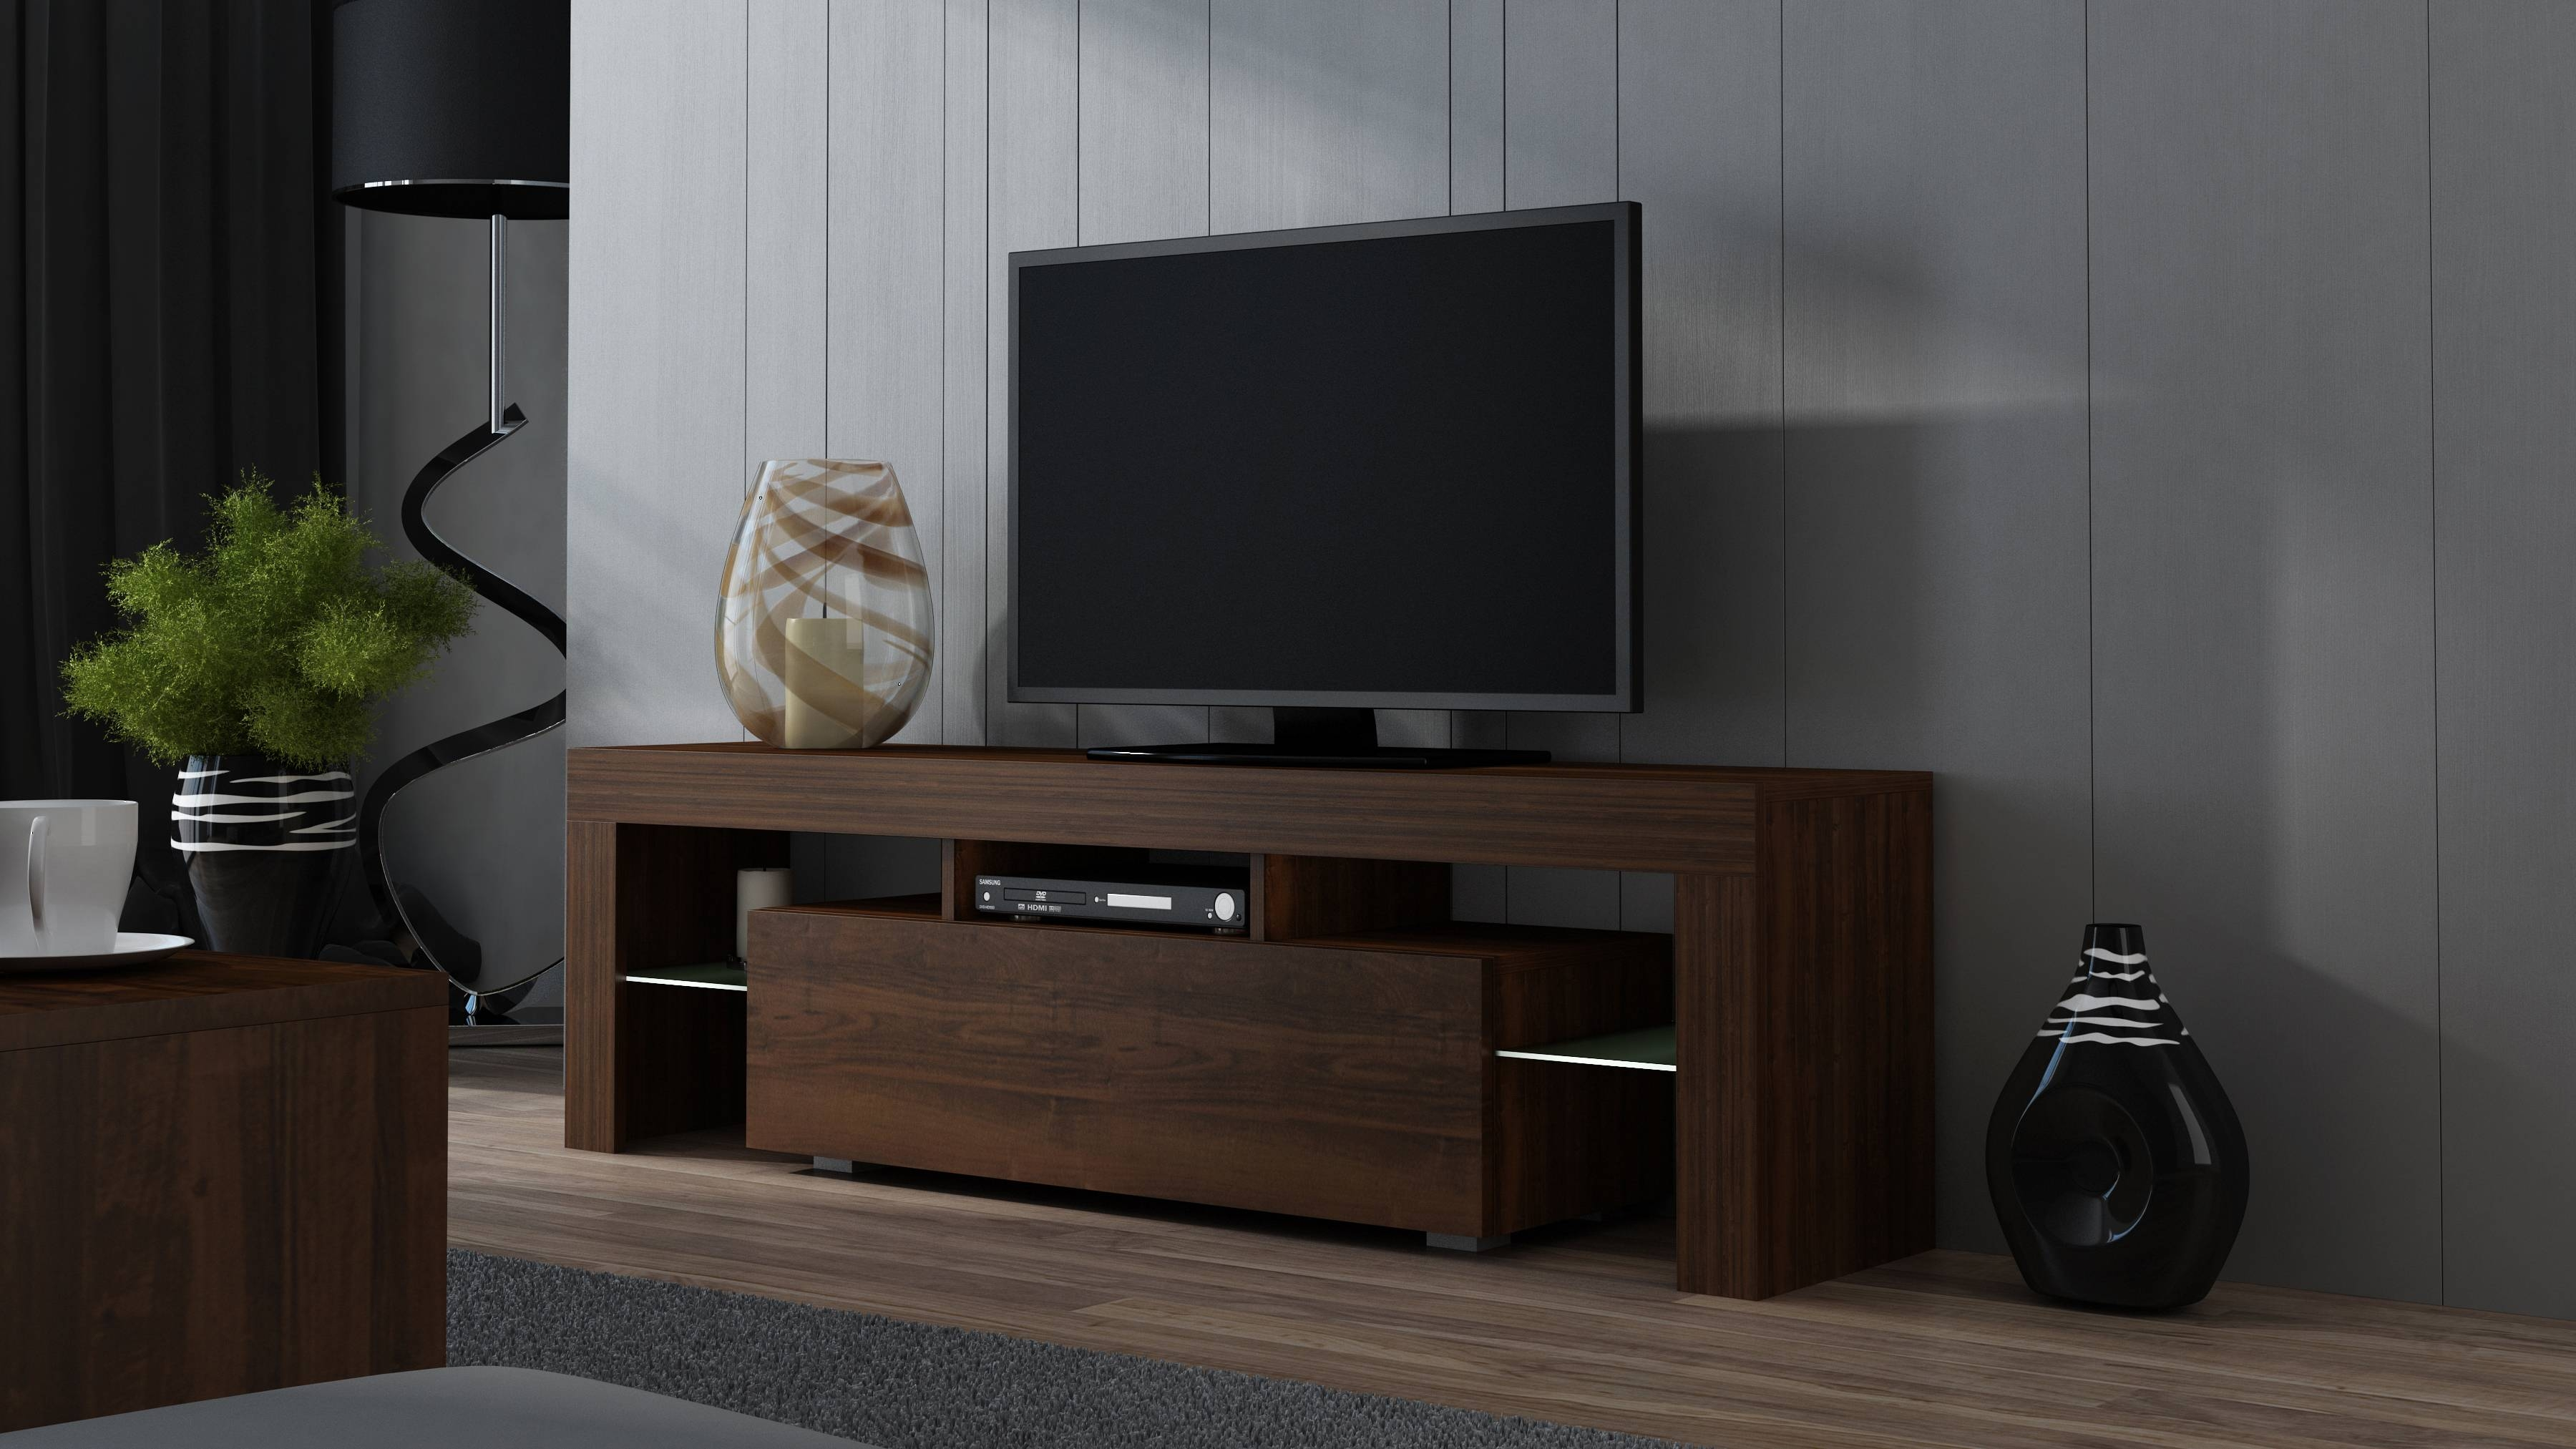 Tv Stand Milano Wenge 160 Mat 2 Colours To Choose! Pejot Meble with Wenge Tv Cabinets (Image 12 of 15)